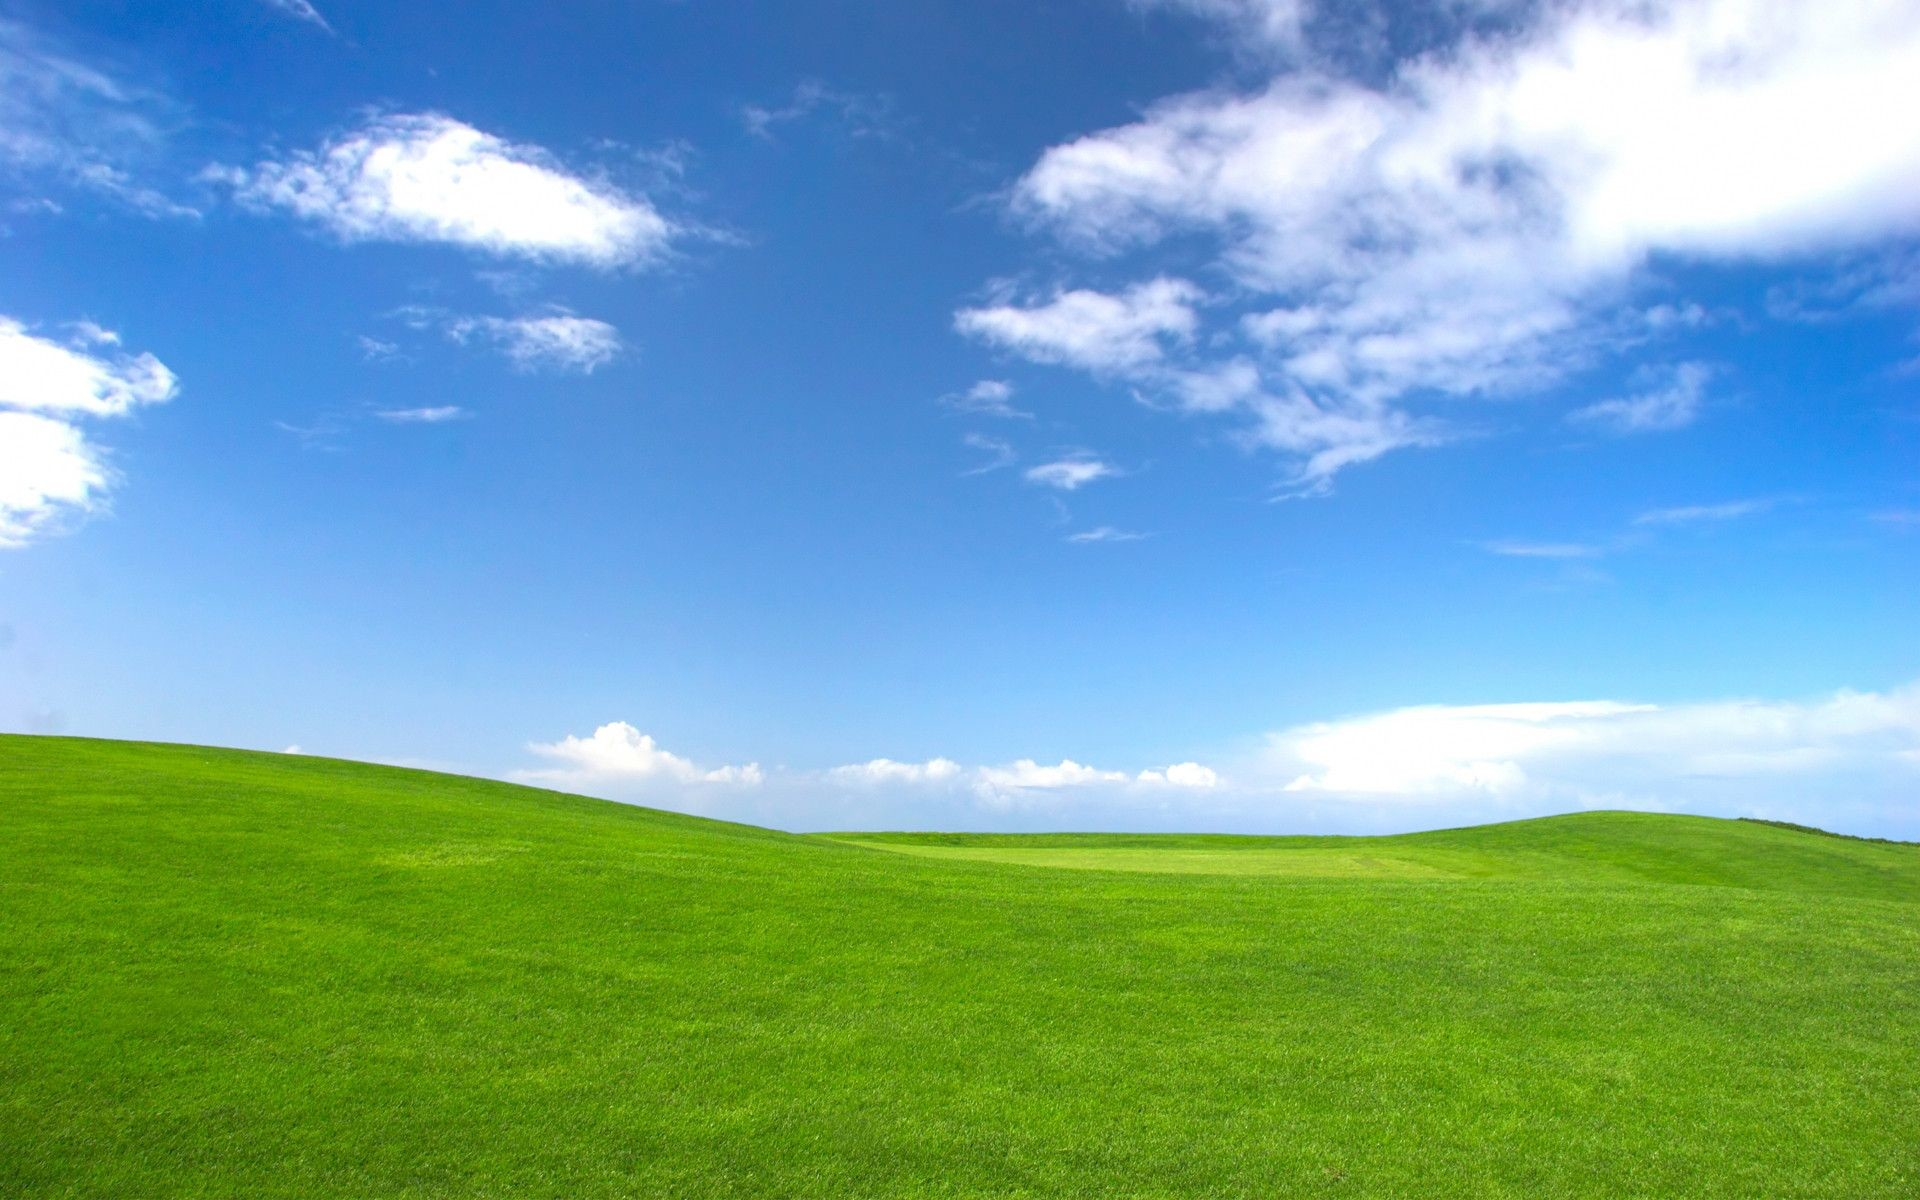 Windows Xp Desktop Backgrounds 43 Images